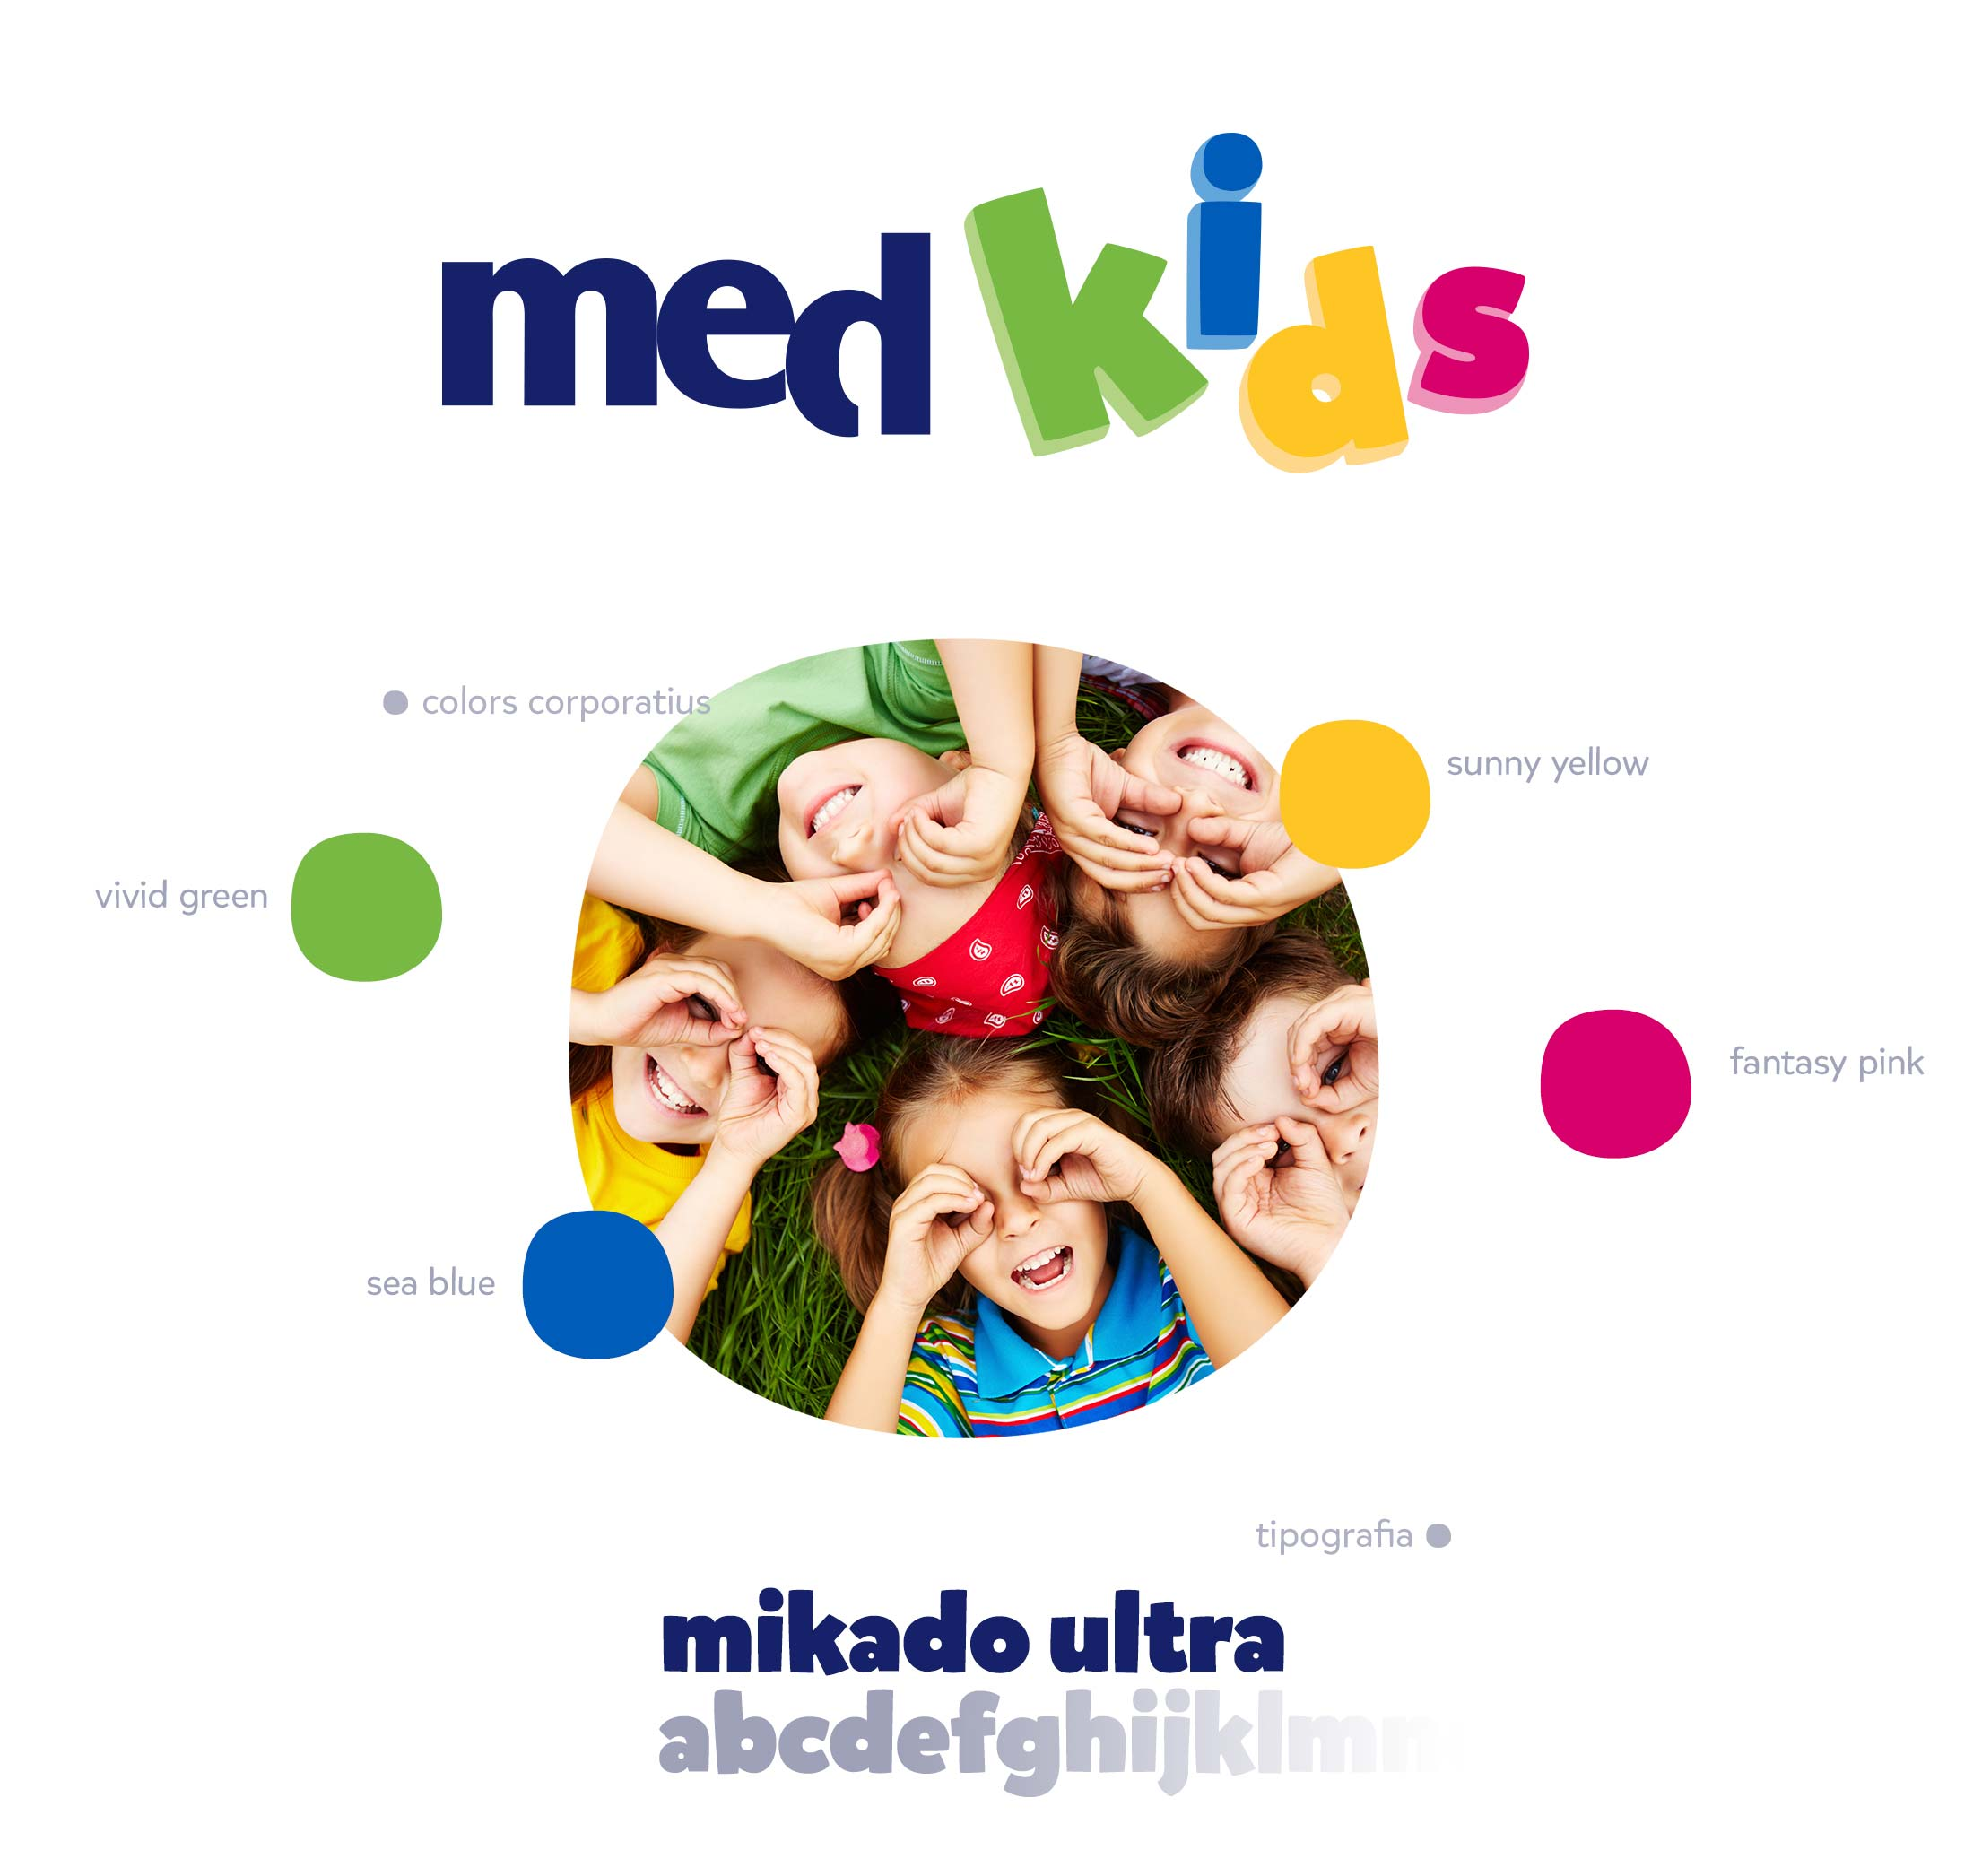 Logotip, marca i colors corporatius per medkids